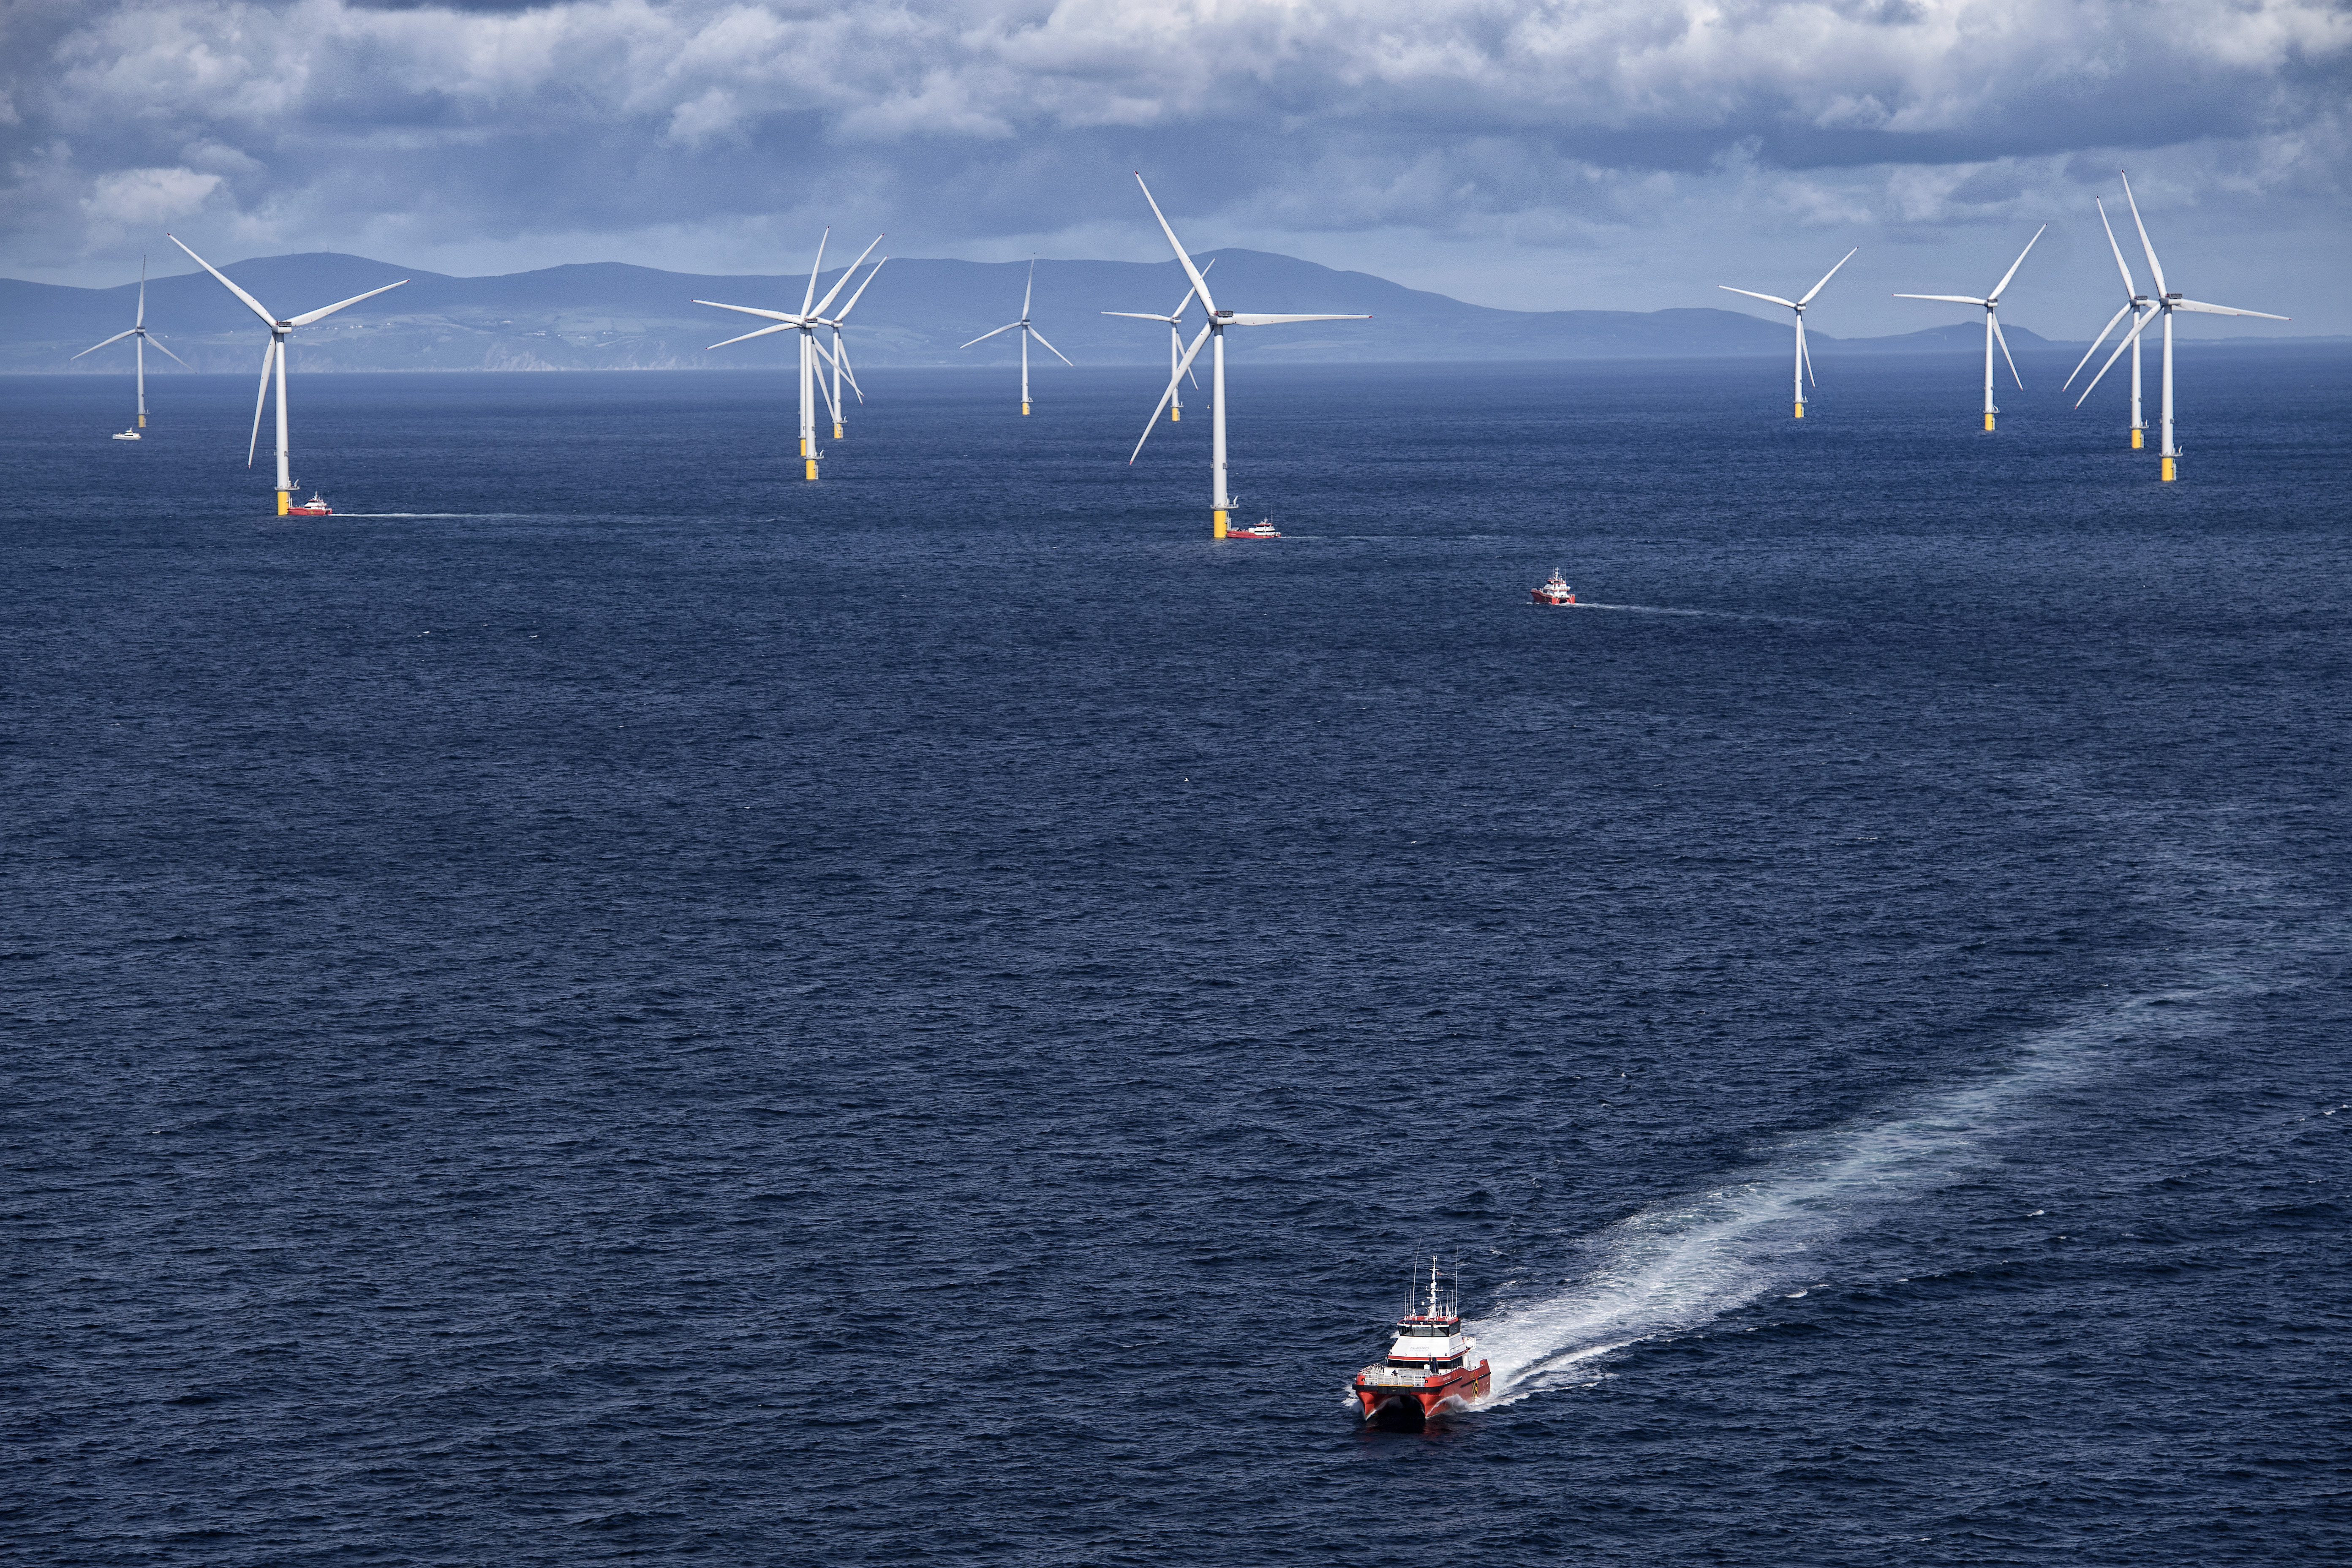 Environmental surveys completed by PKN ORLEN for its offshore wind farm project in Baltic Sea